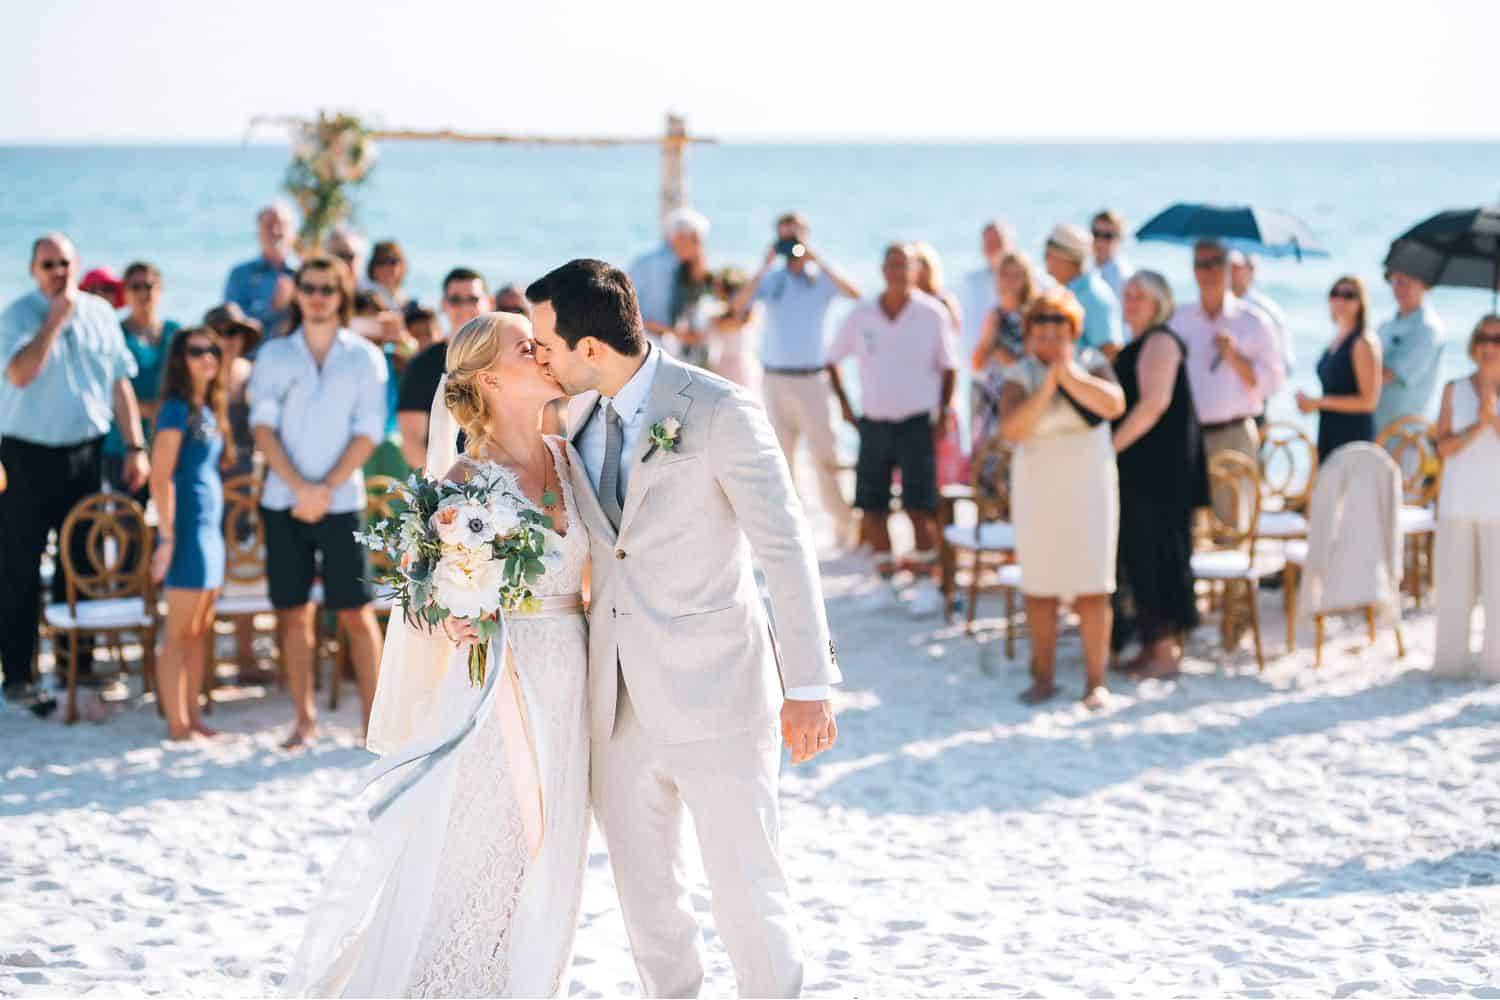 A bride and groom kiss after processing up the aisle after their wedding ceremony on the beach